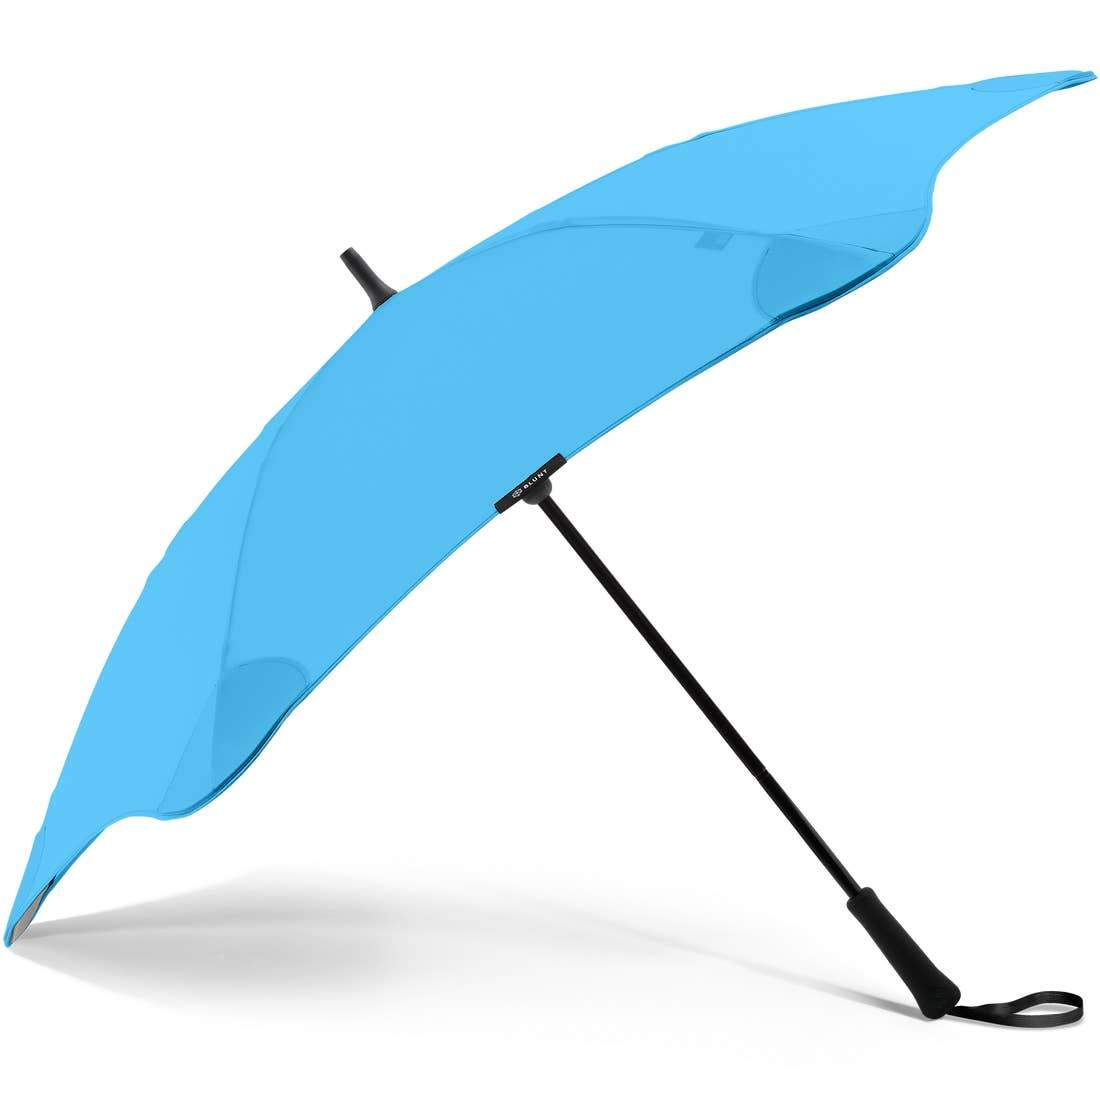 Blunt Umbrellas, Classic Umbrella - Aqua Blue, - Placewares